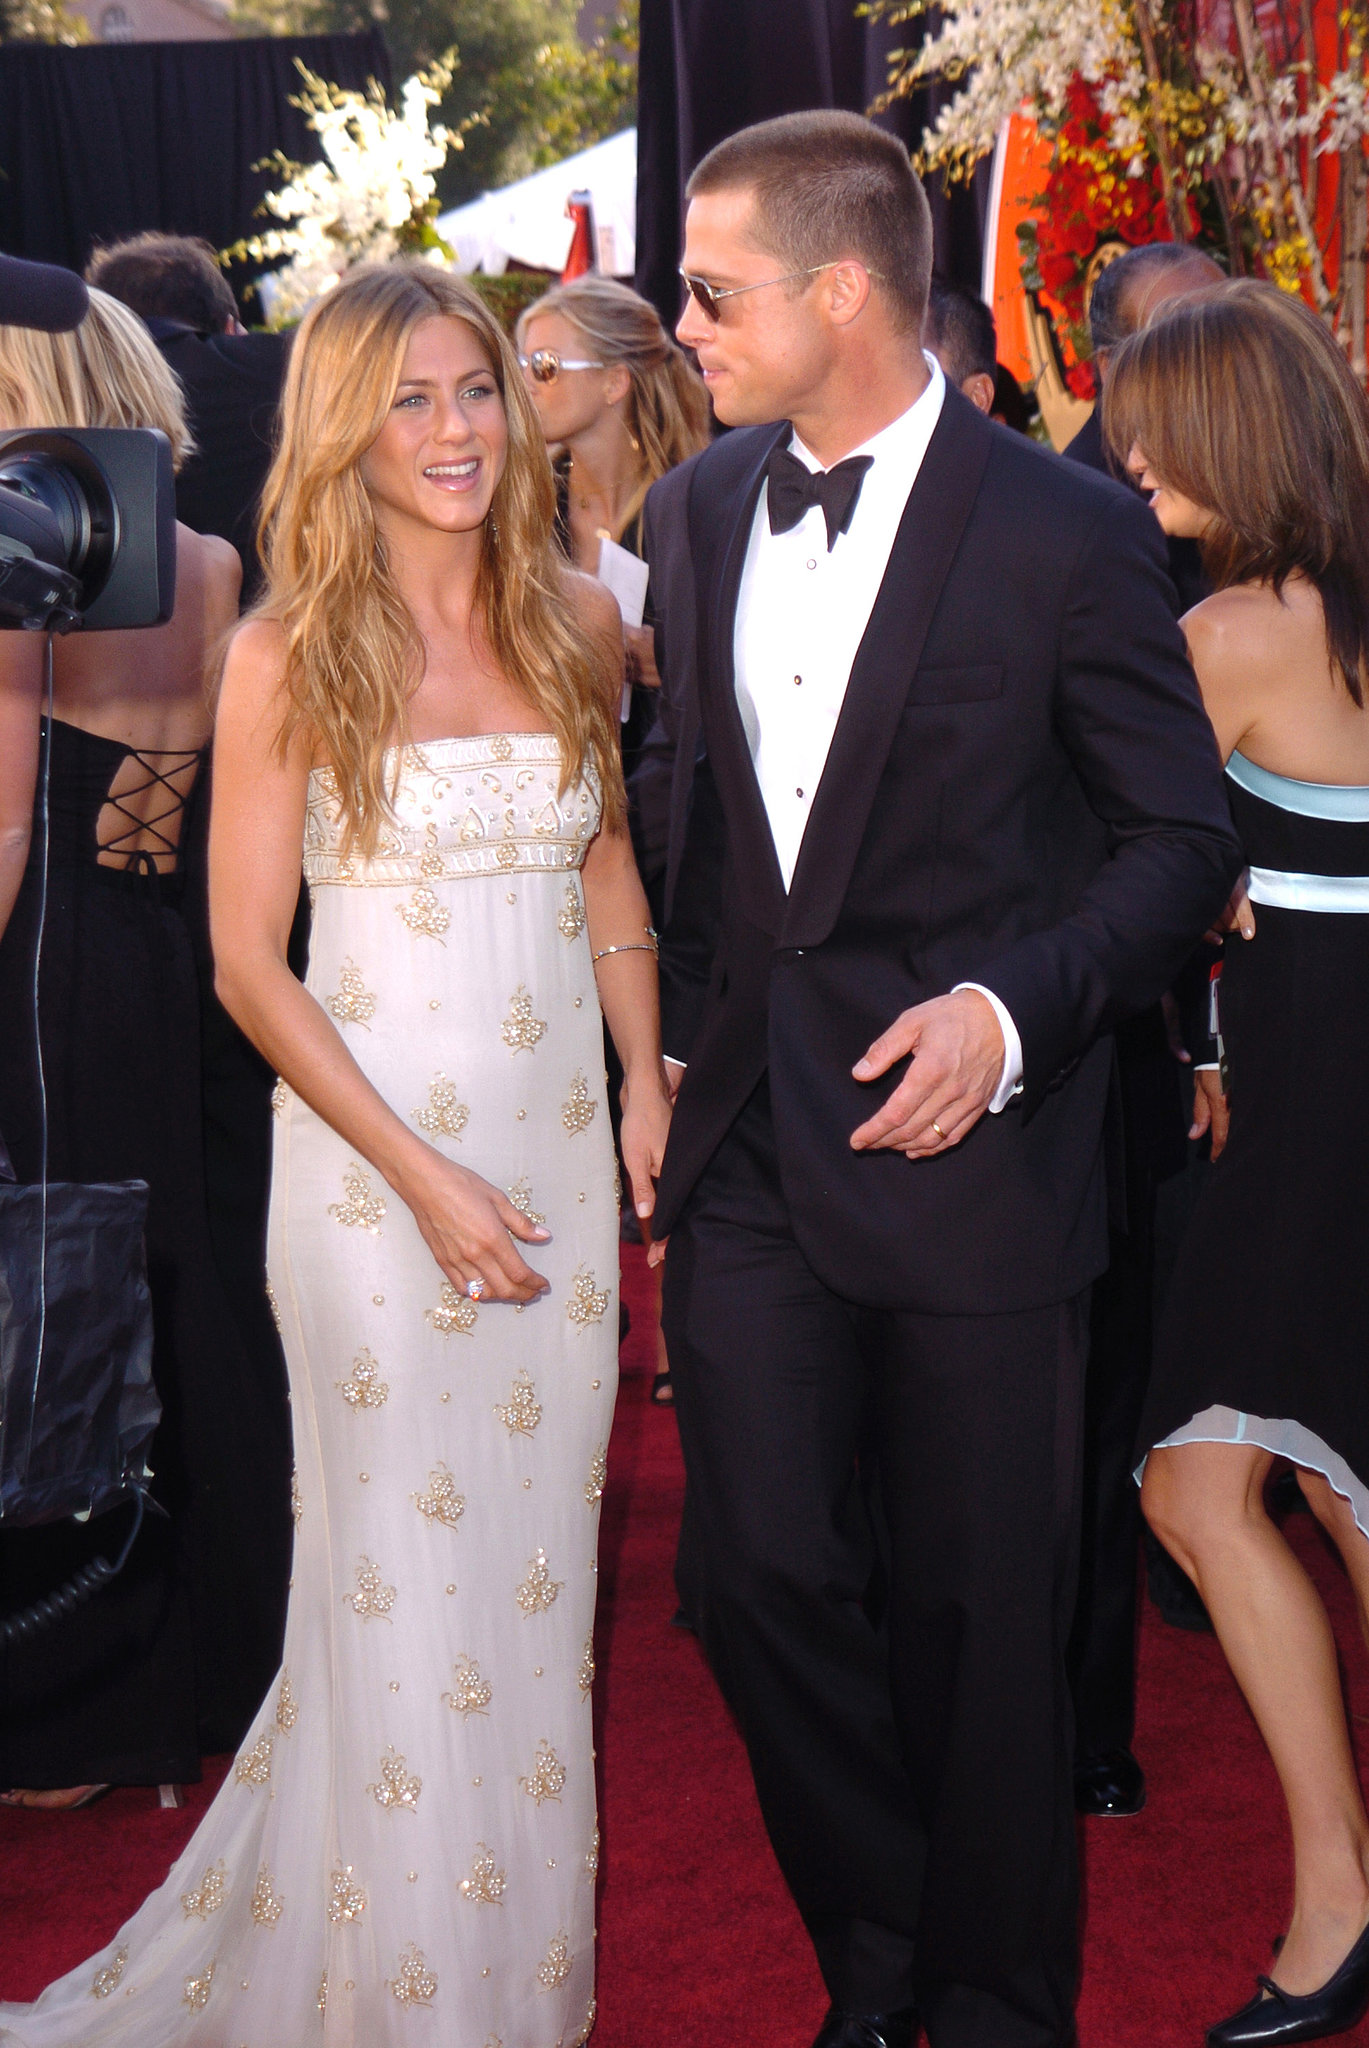 Jennifer Aniston wore a lovely white and gold gown to the festivities in 2004.